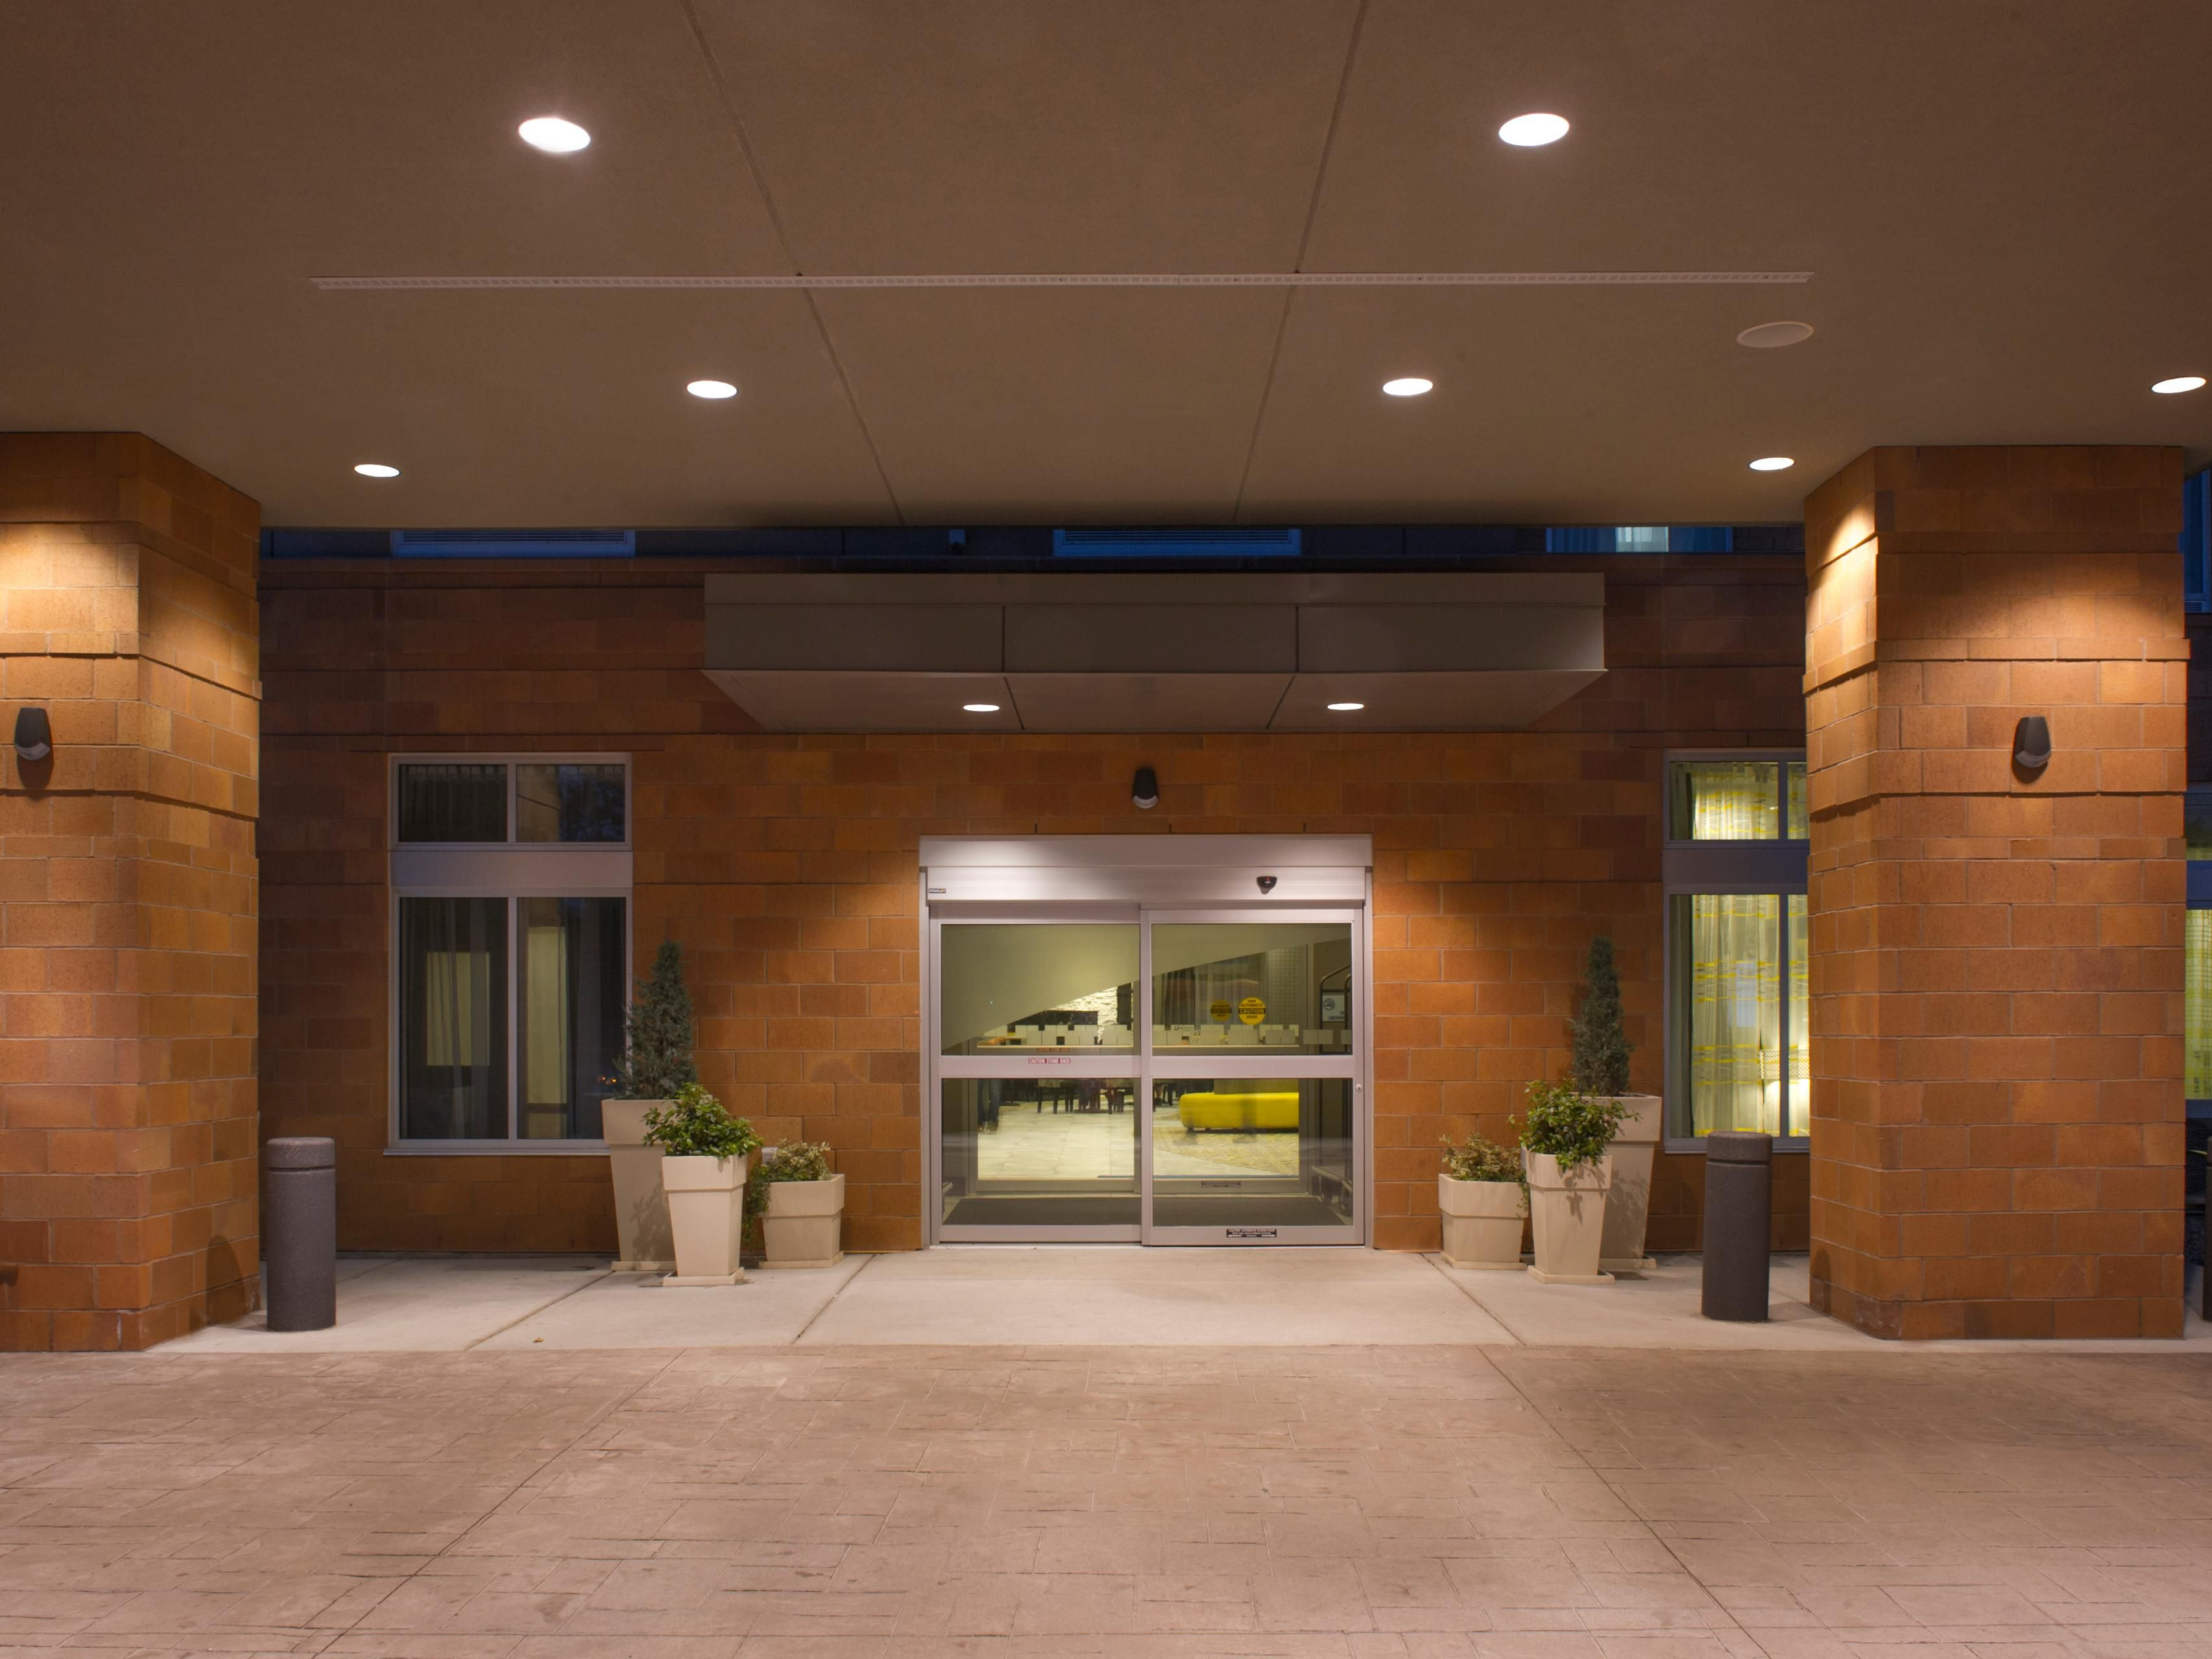 Holiday Inn Express Madison Central Porte-cochère